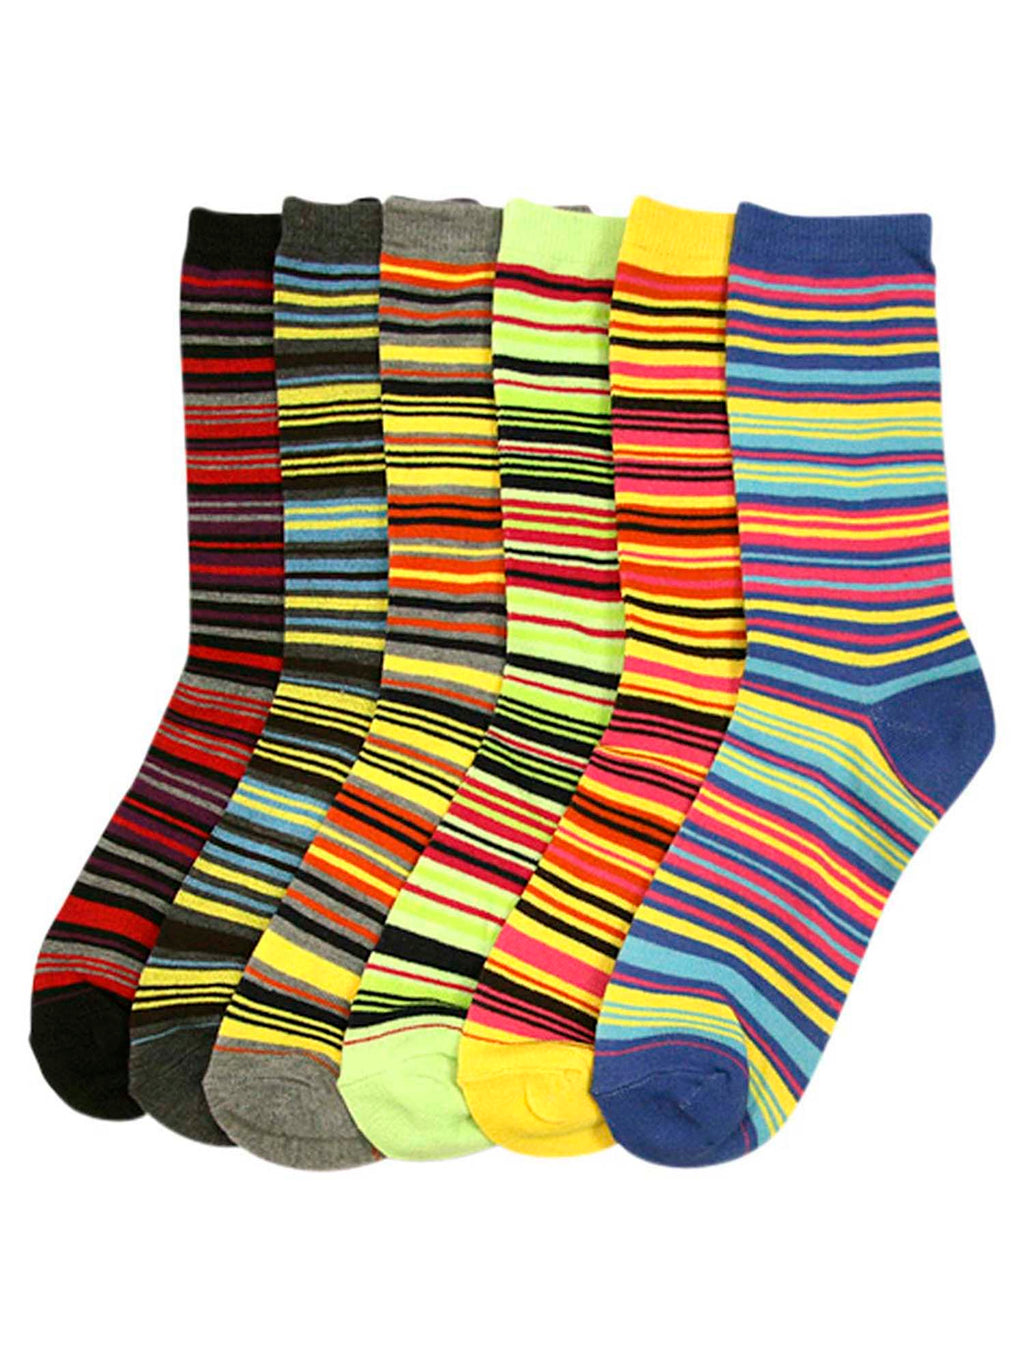 Multicolor Bright Striped Womens 6 Pack Assorted Crew Socks